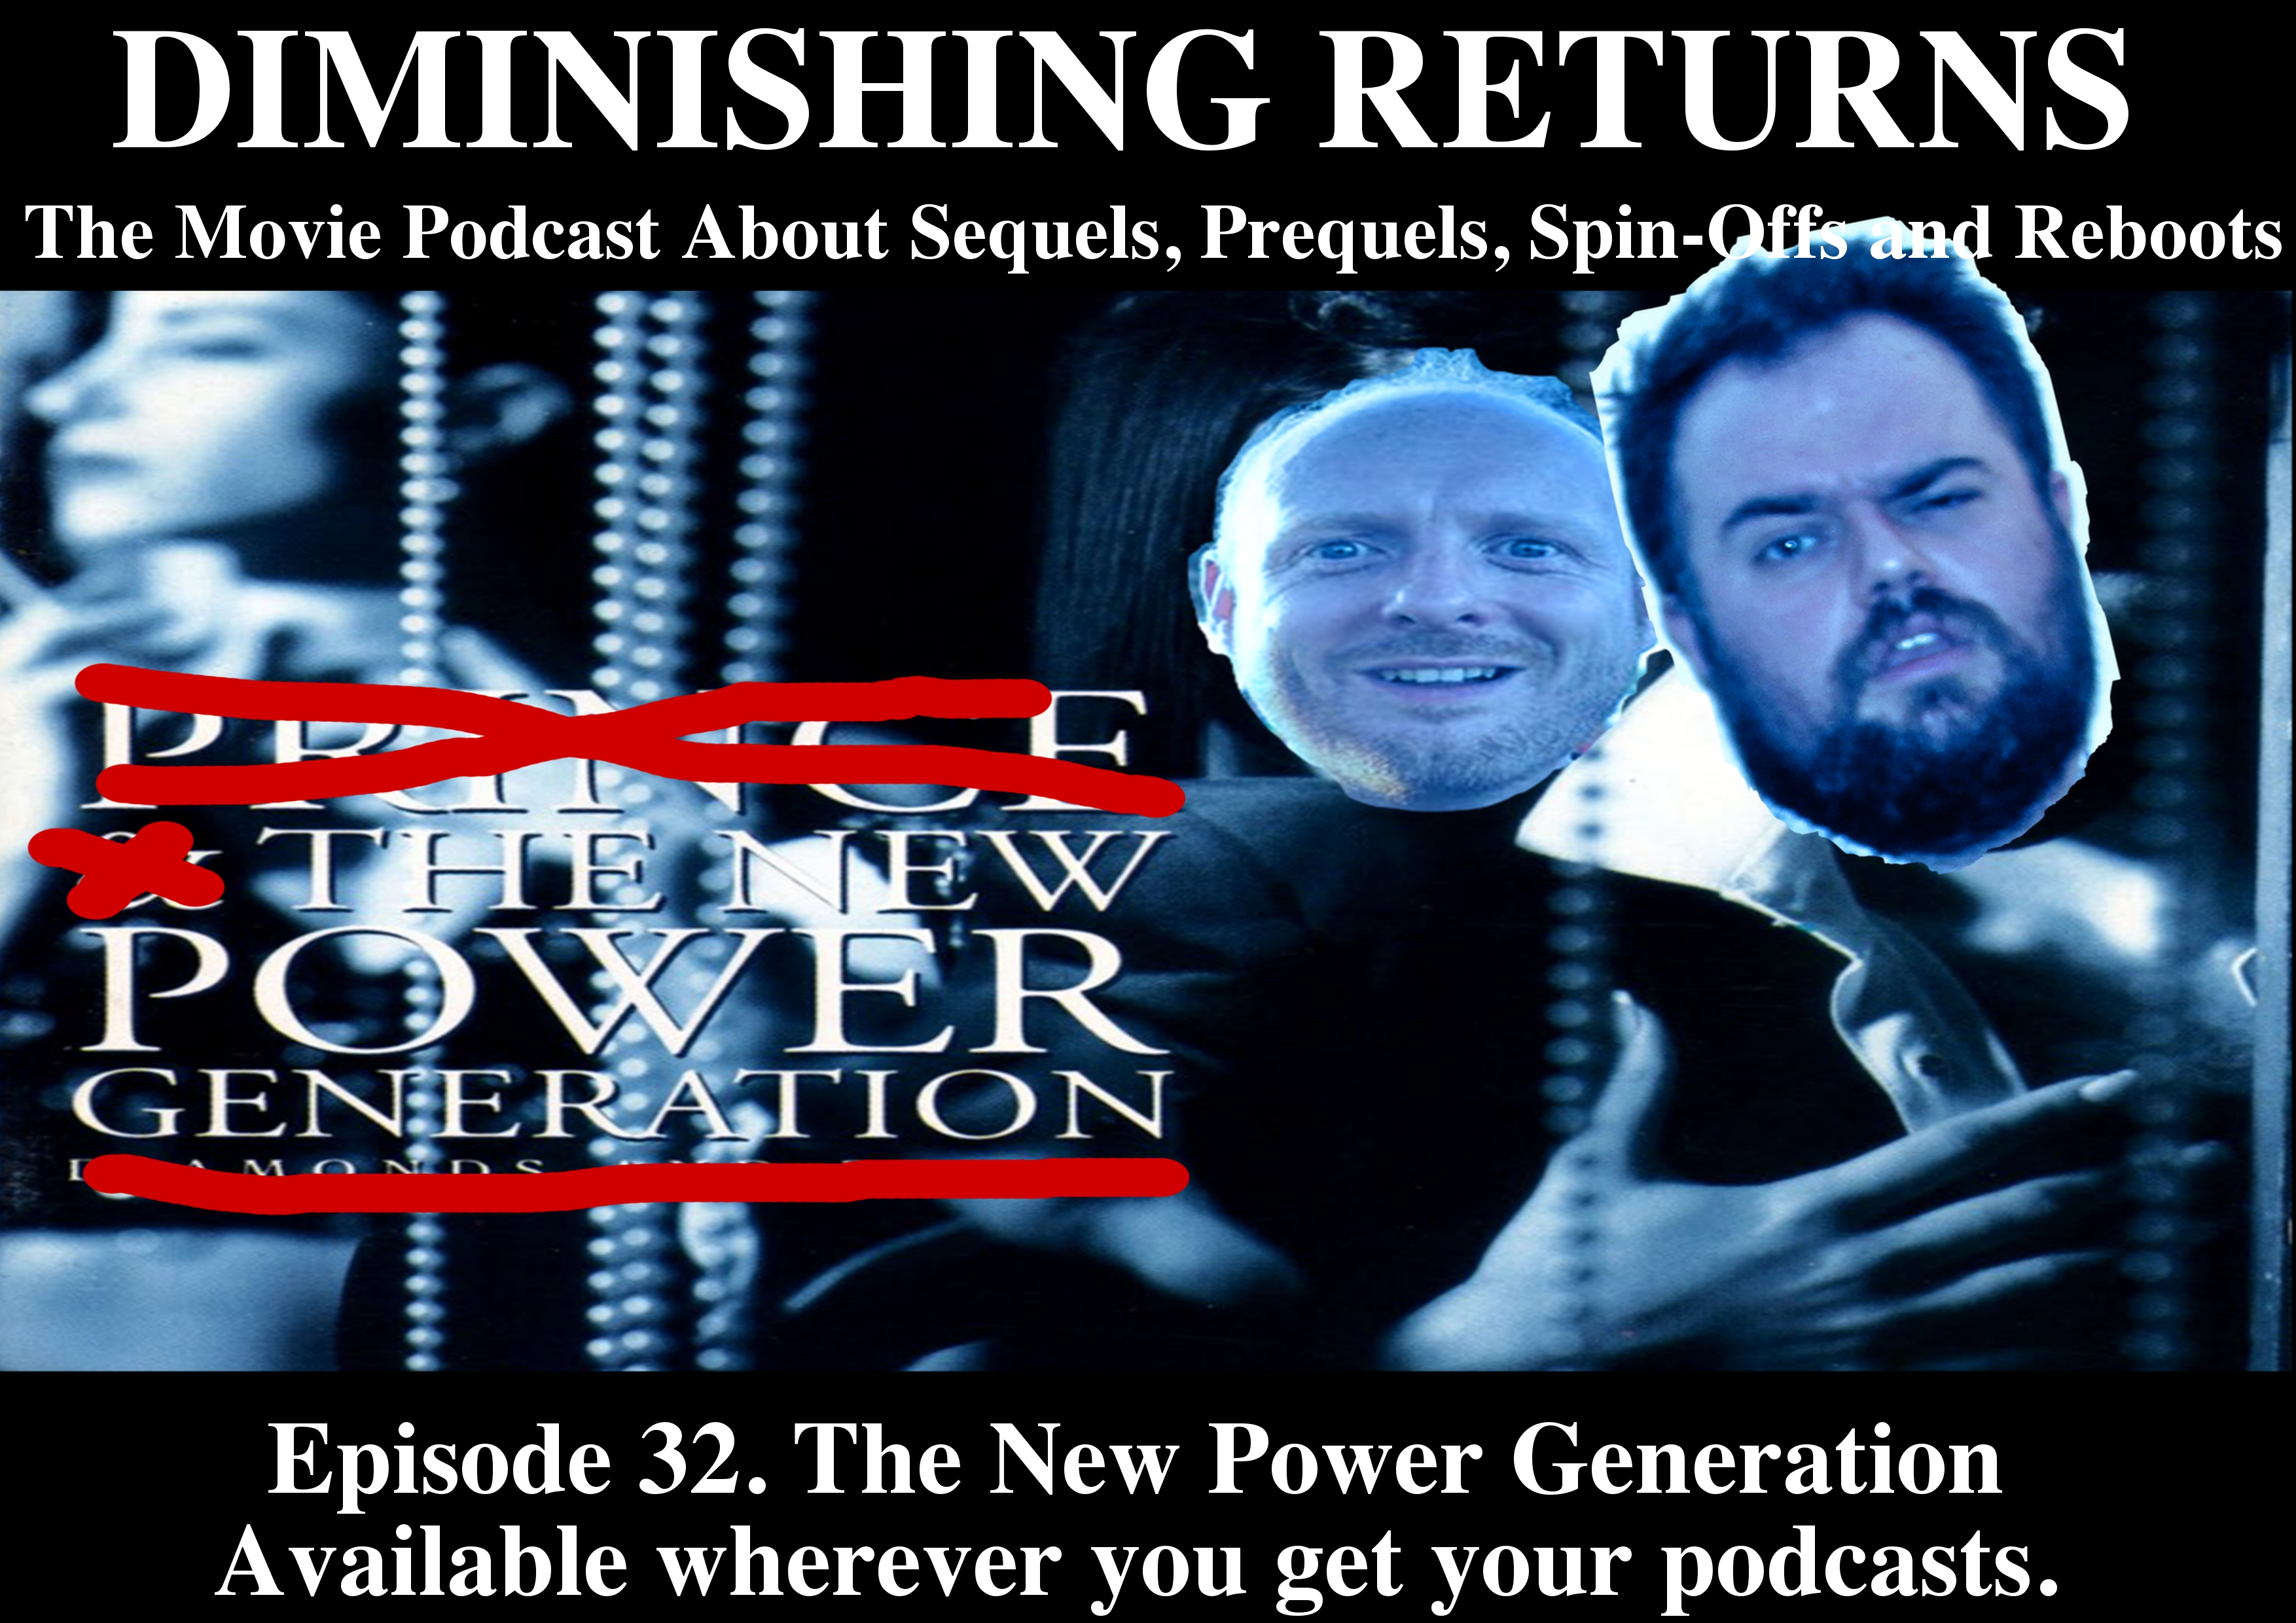 Diminishing Returns epsiode 32. The New Power Generation